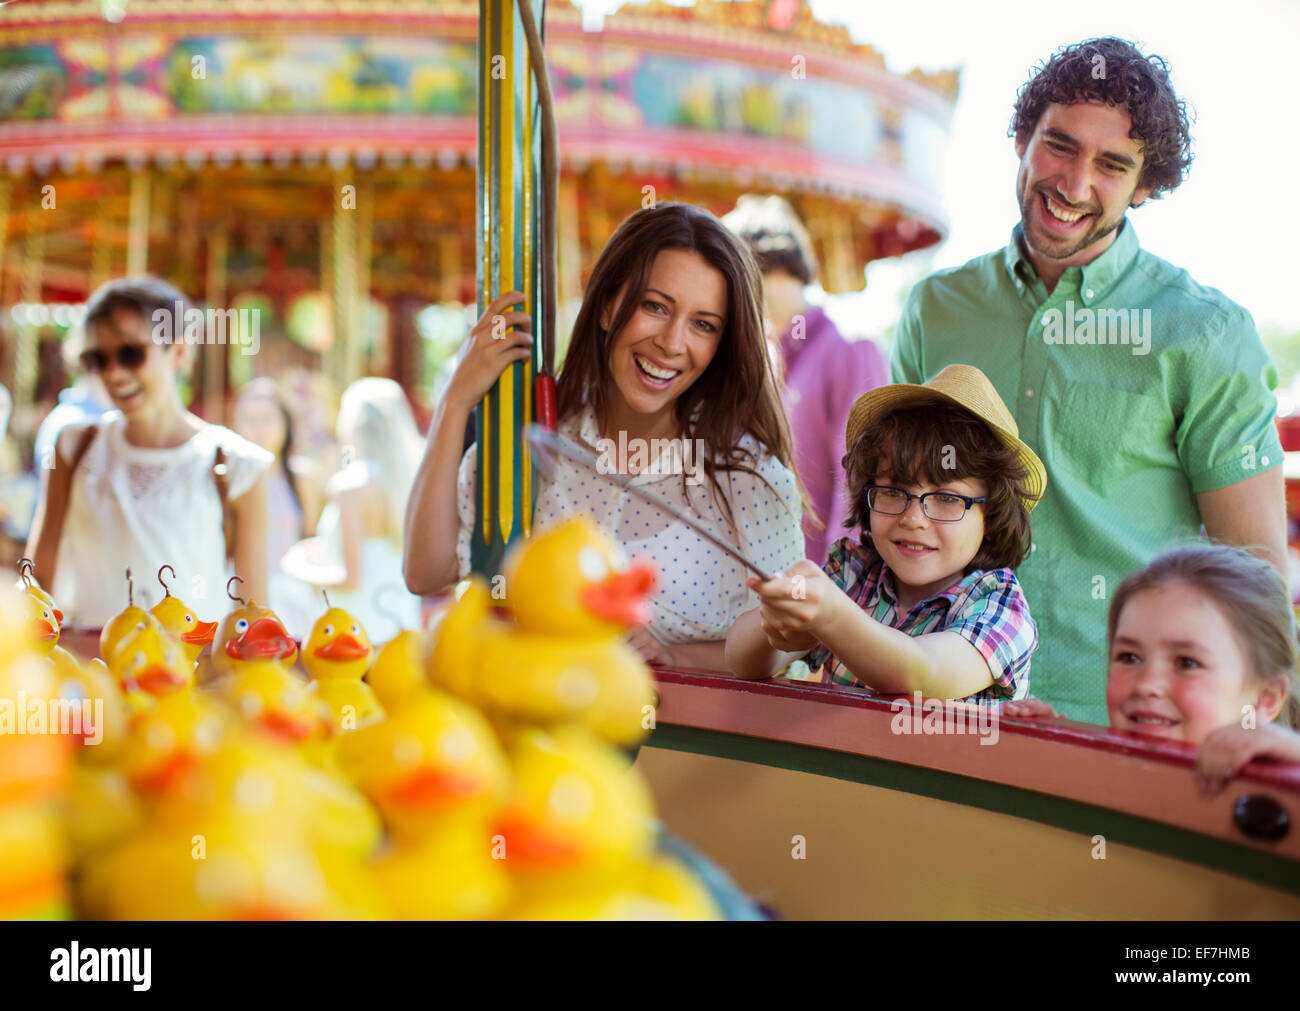 Parents with two children having fun with fishing game in amusement park - Stock Image